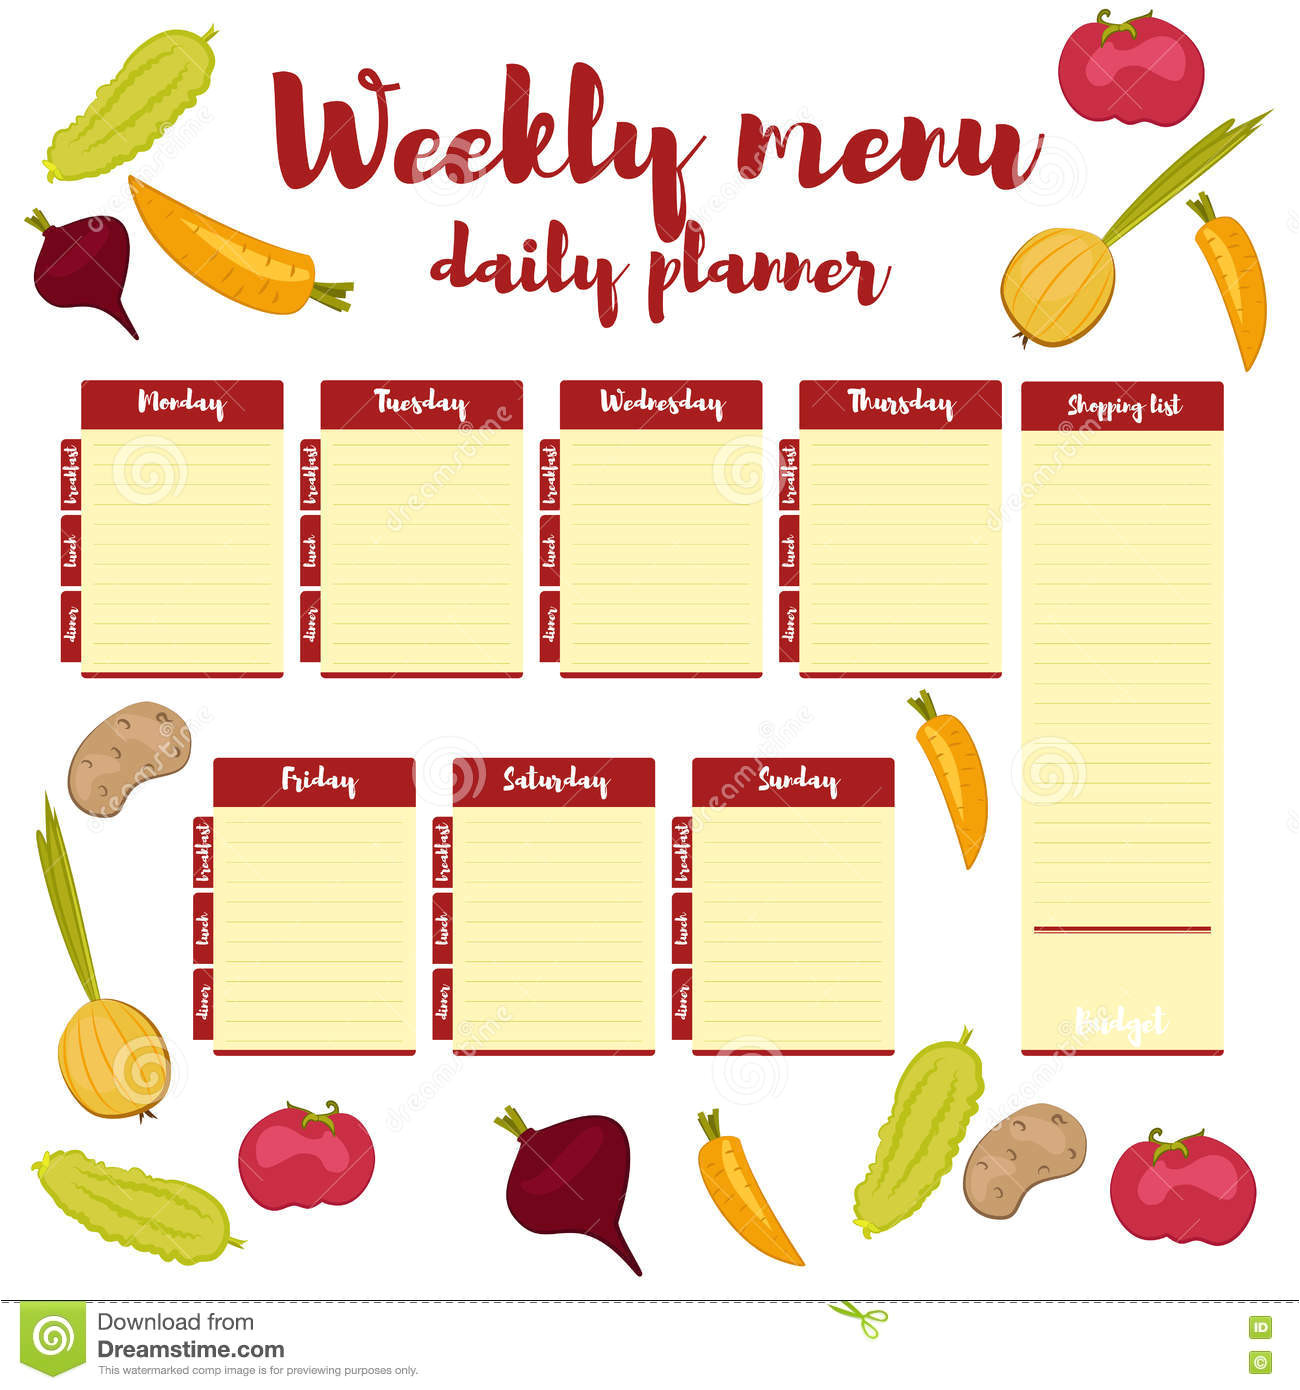 stock illustration weekly menu red planner colored paper note week healthy eating routine breakfast lunch dinner calendar template shopping image75503586